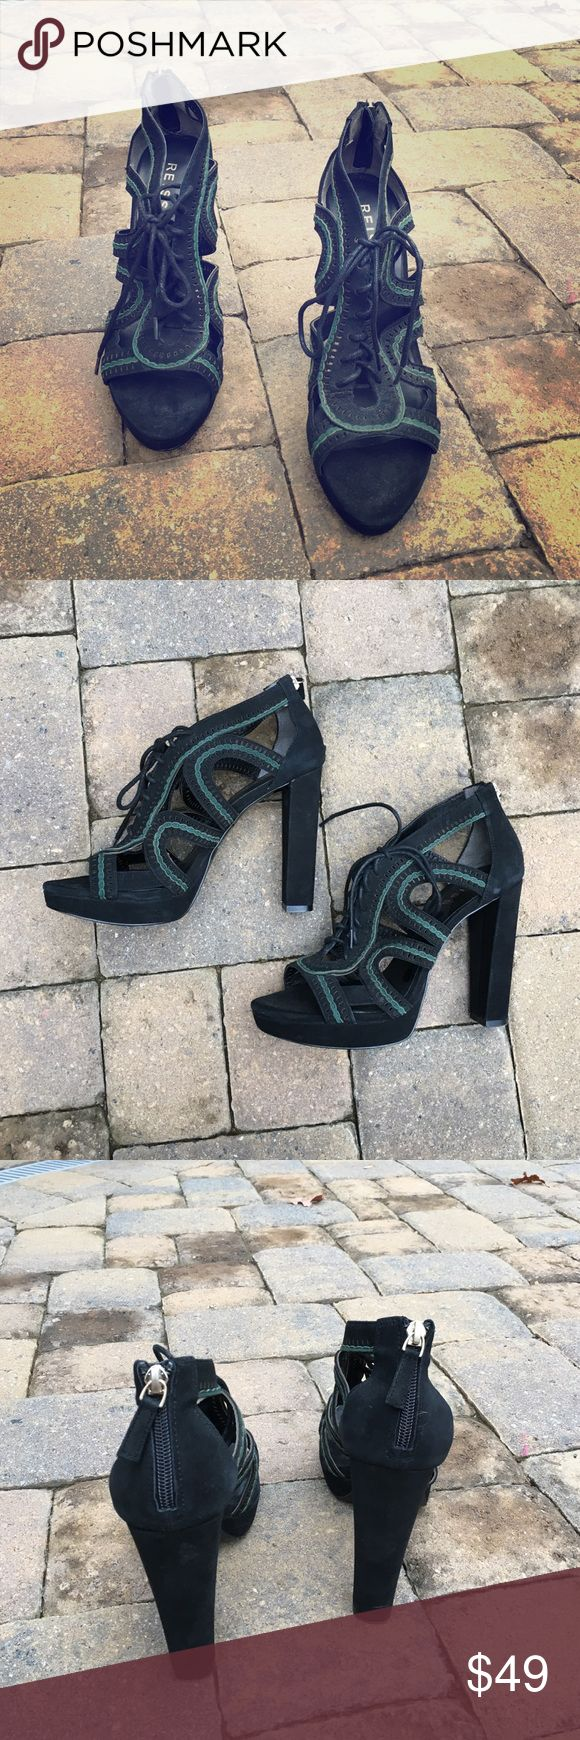 Reiss Platform Heels - Black Suede Reiss platform heels. Primarily black with some dark green details on top of shoe. Zipper closure at heel. Shoe string tie on top of shoe. In great condition - worn only one time. Reiss Shoes Heels